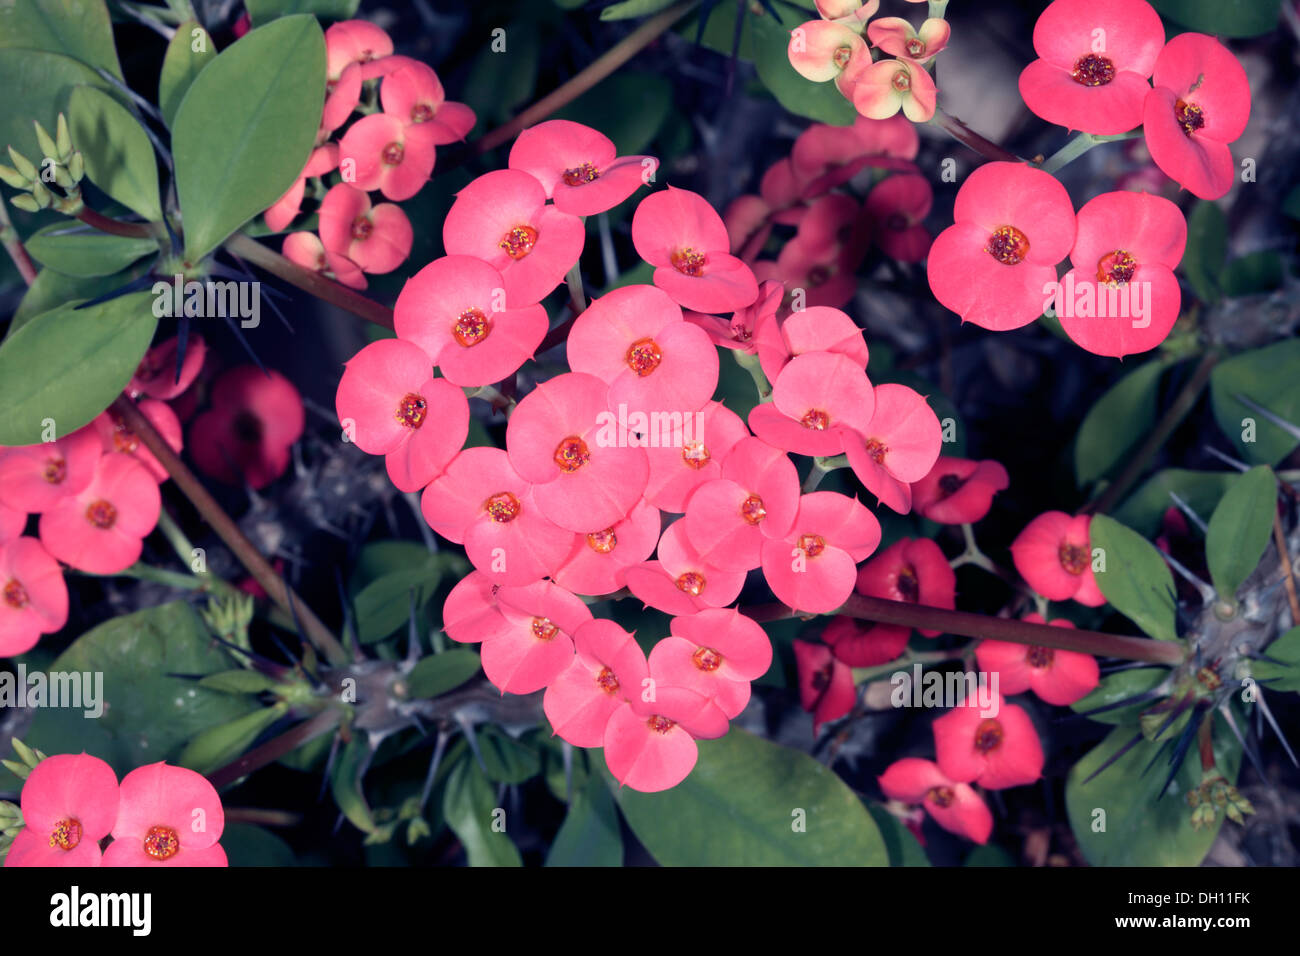 Euphorbia milii flowers thorns plant stock photos euphorbia milii crown of thorns christ plant christ thorn cactus flowers euphorbia milii family mightylinksfo